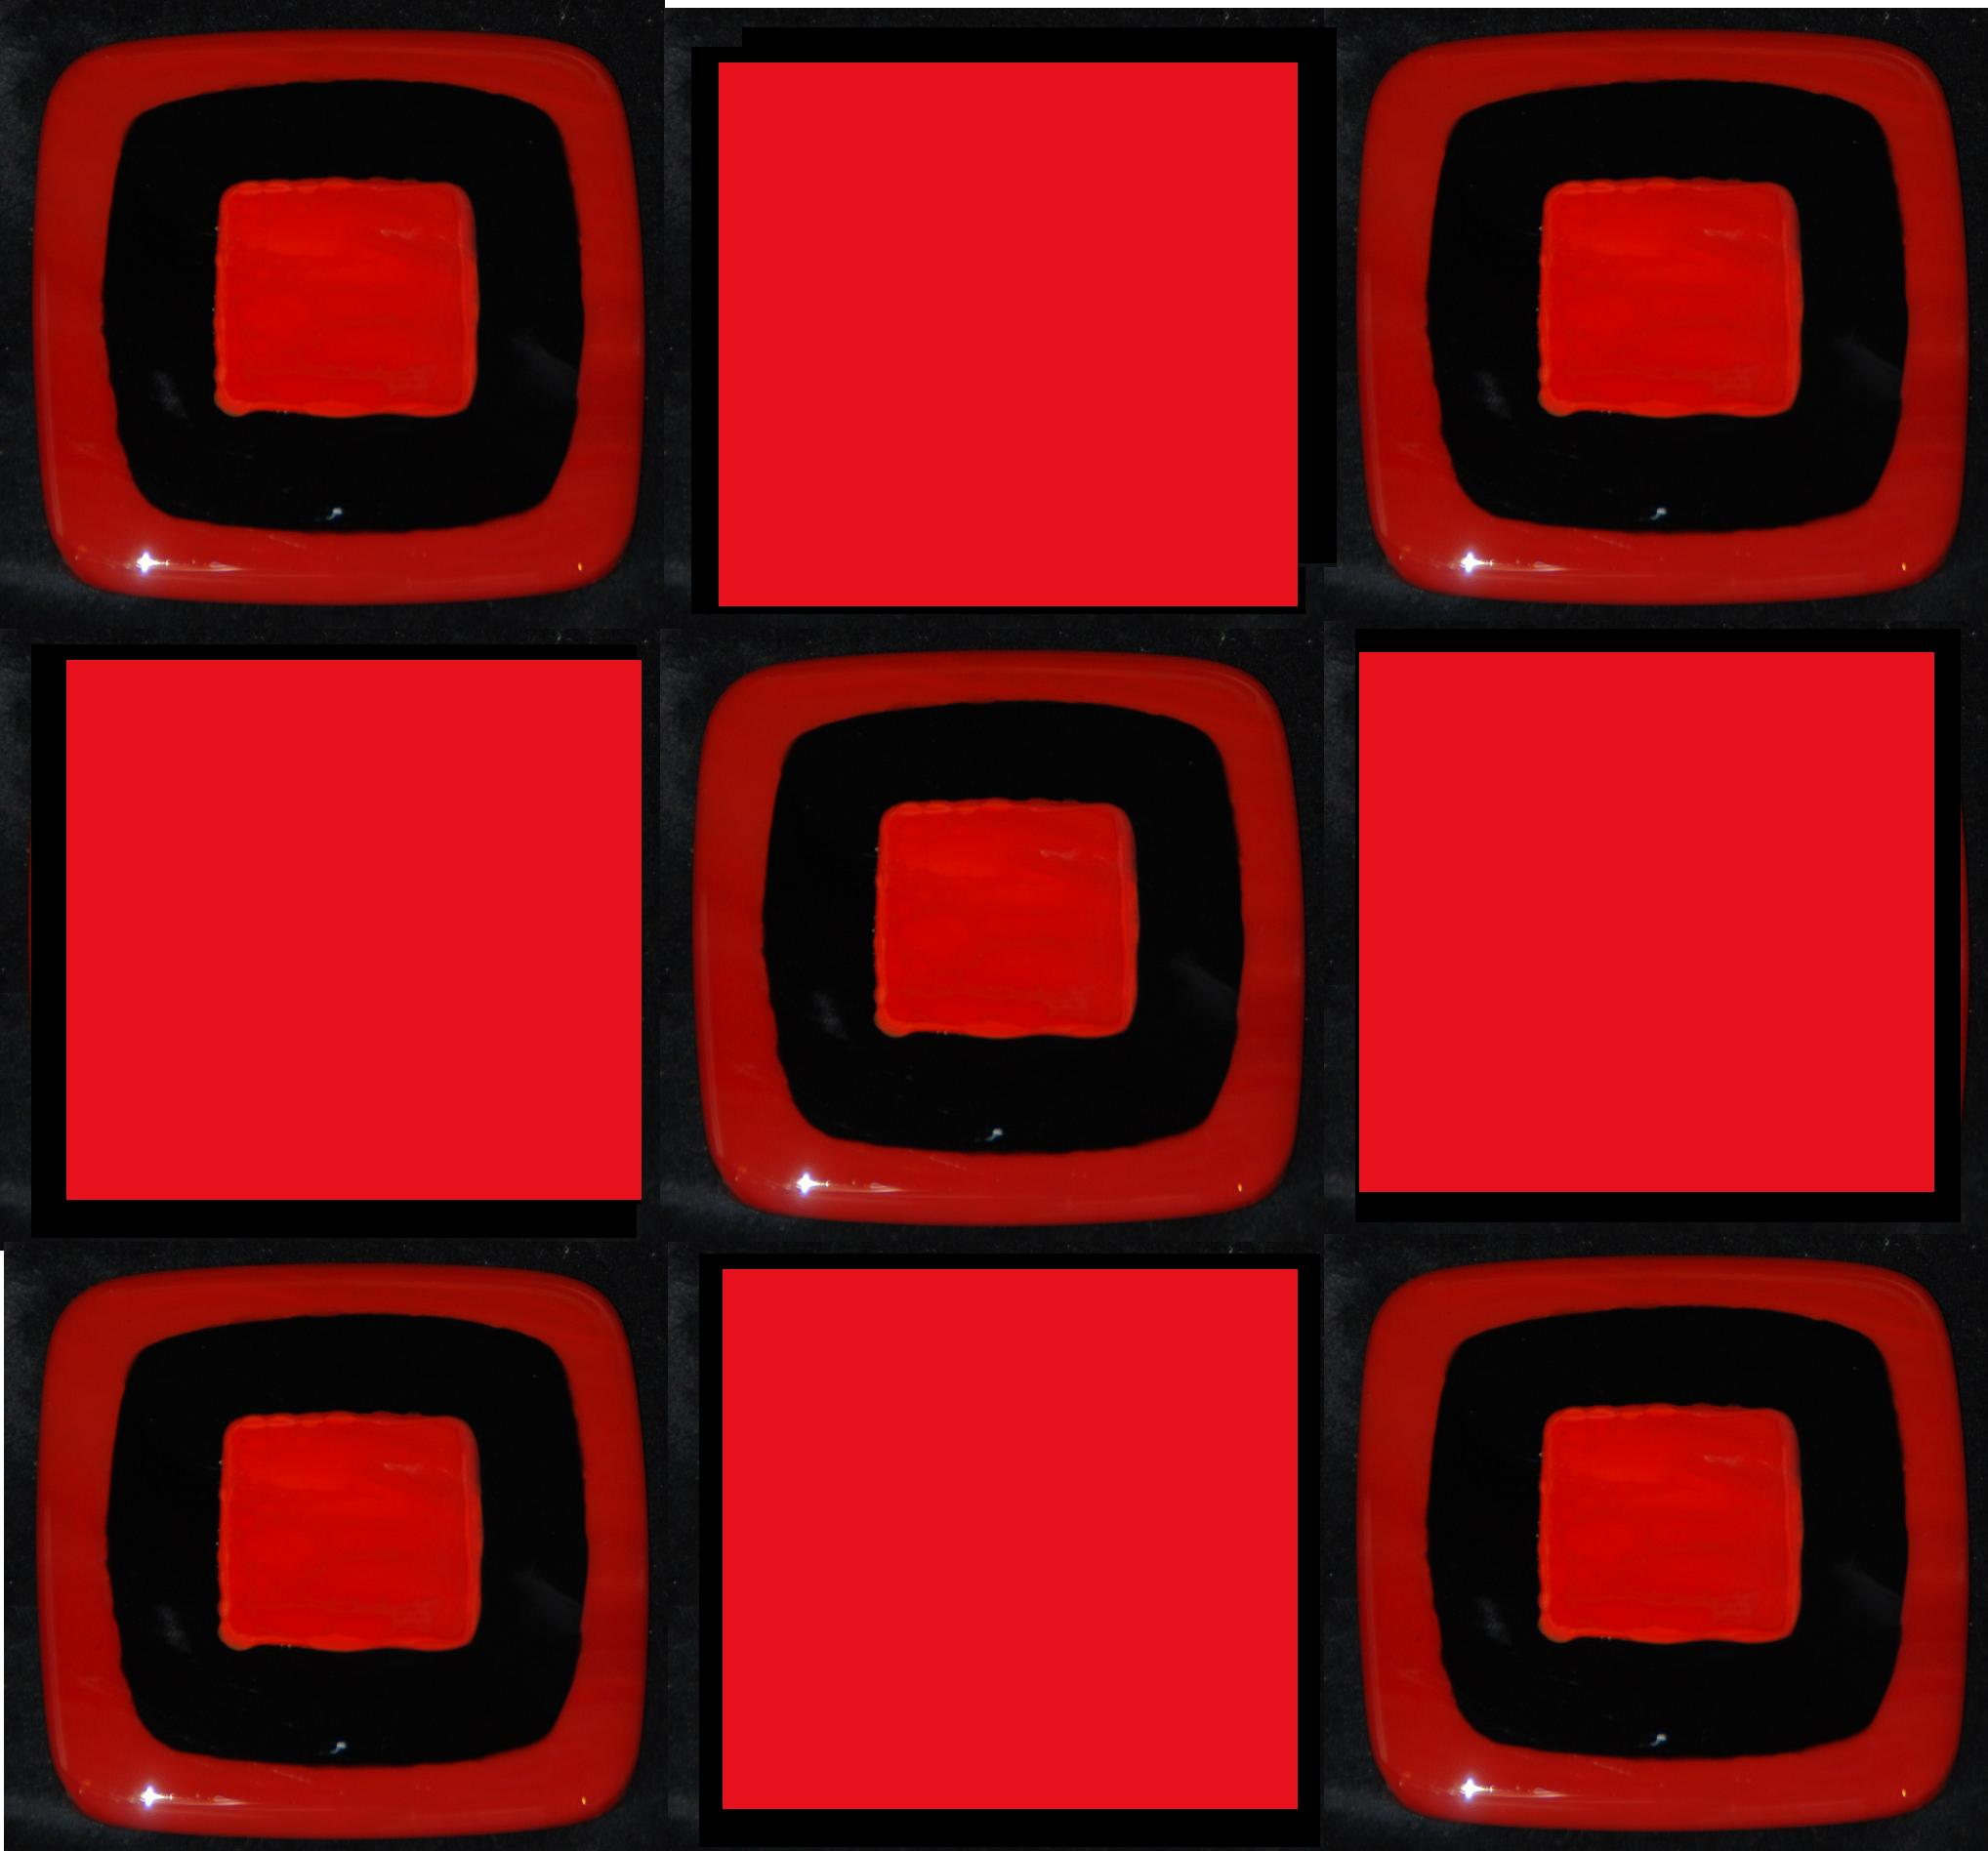 red on black tiles with light red.jpg